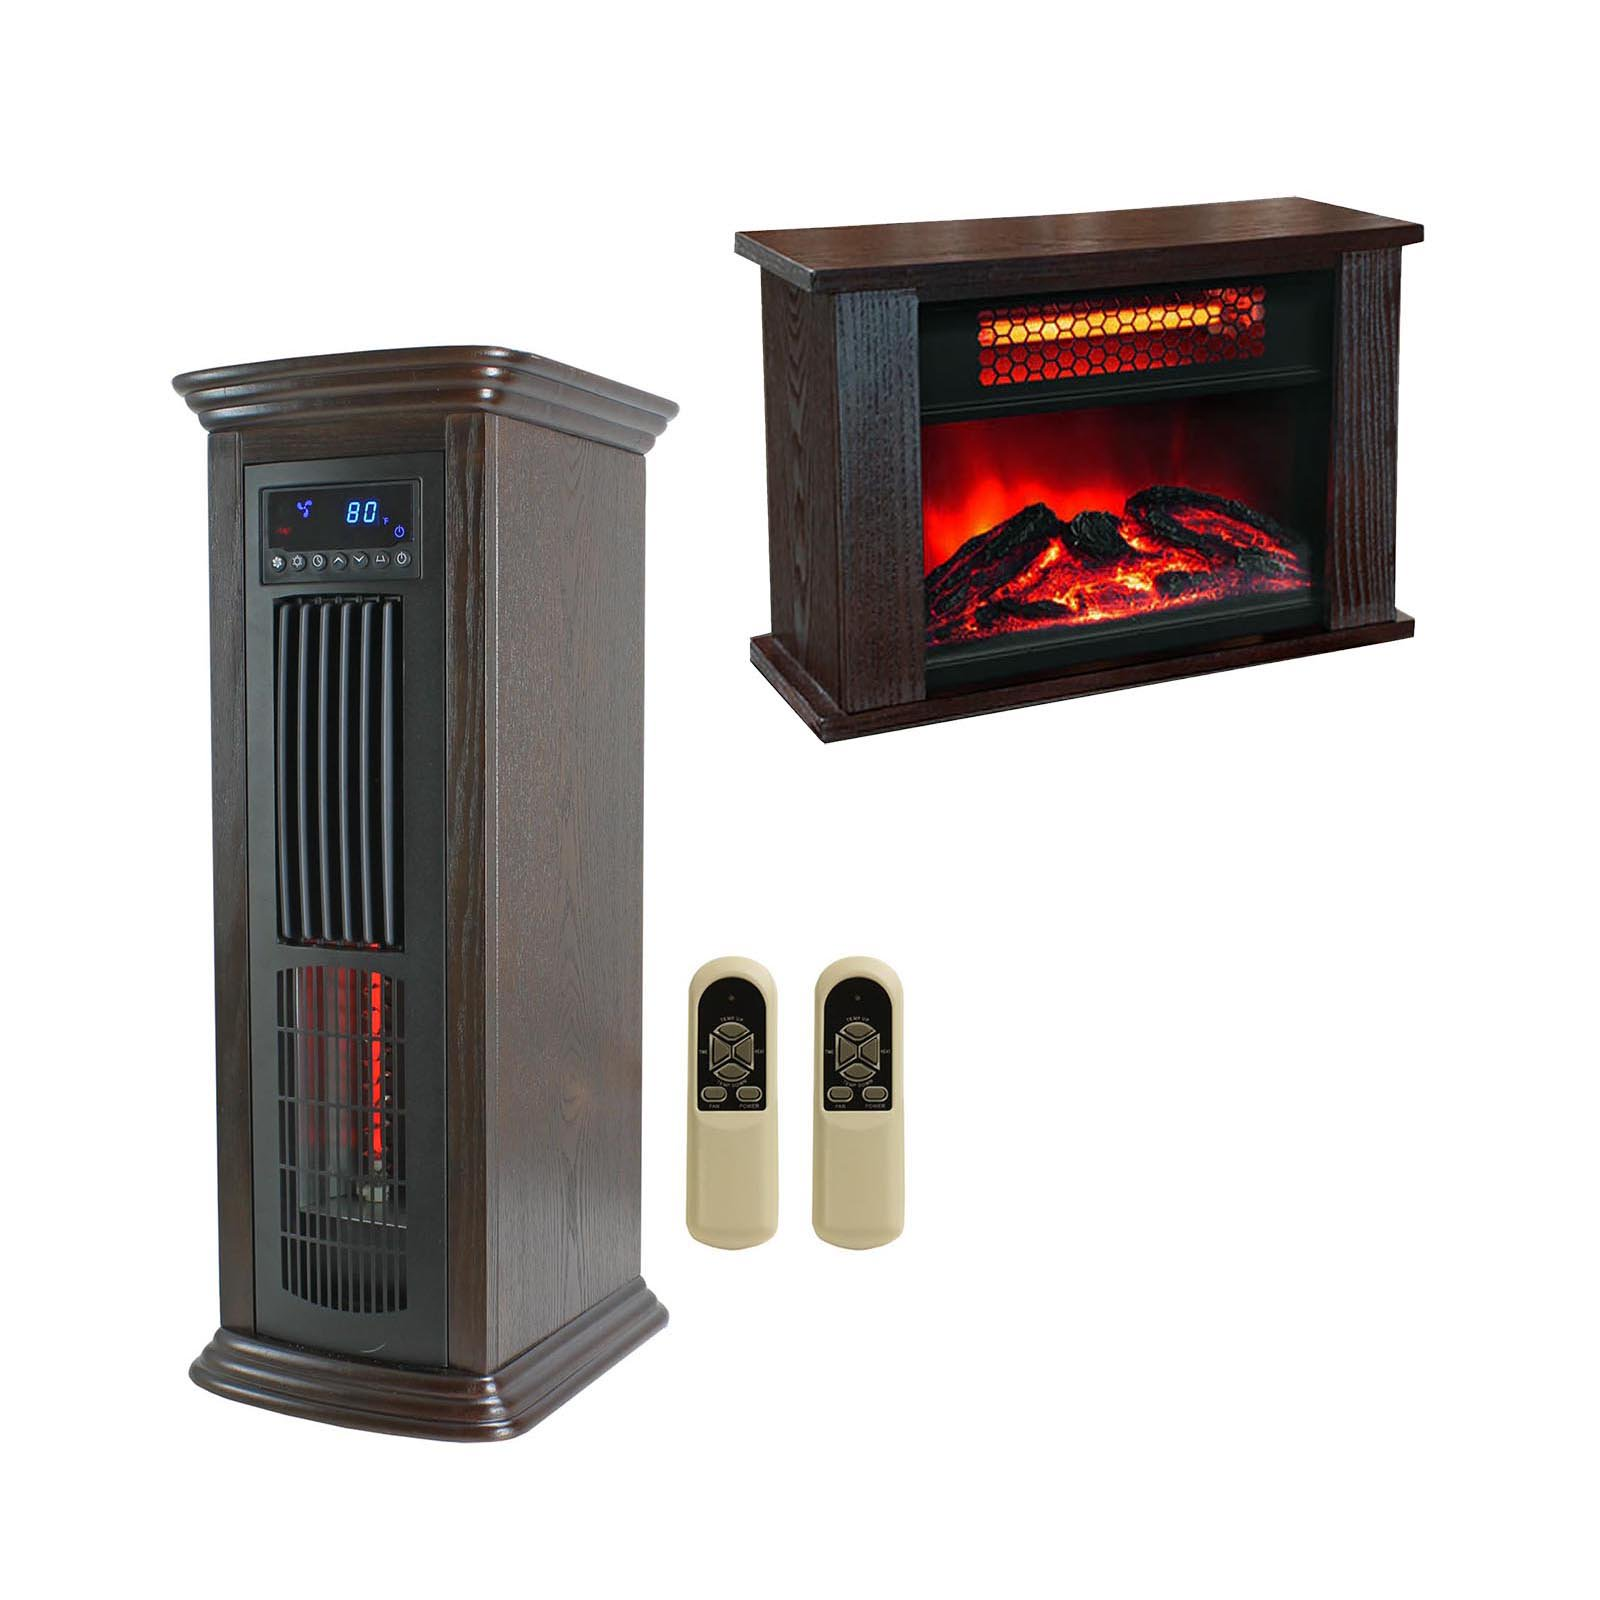 LifePro 150 SF Room Infrared Tower Space Heater + Mini Fi...